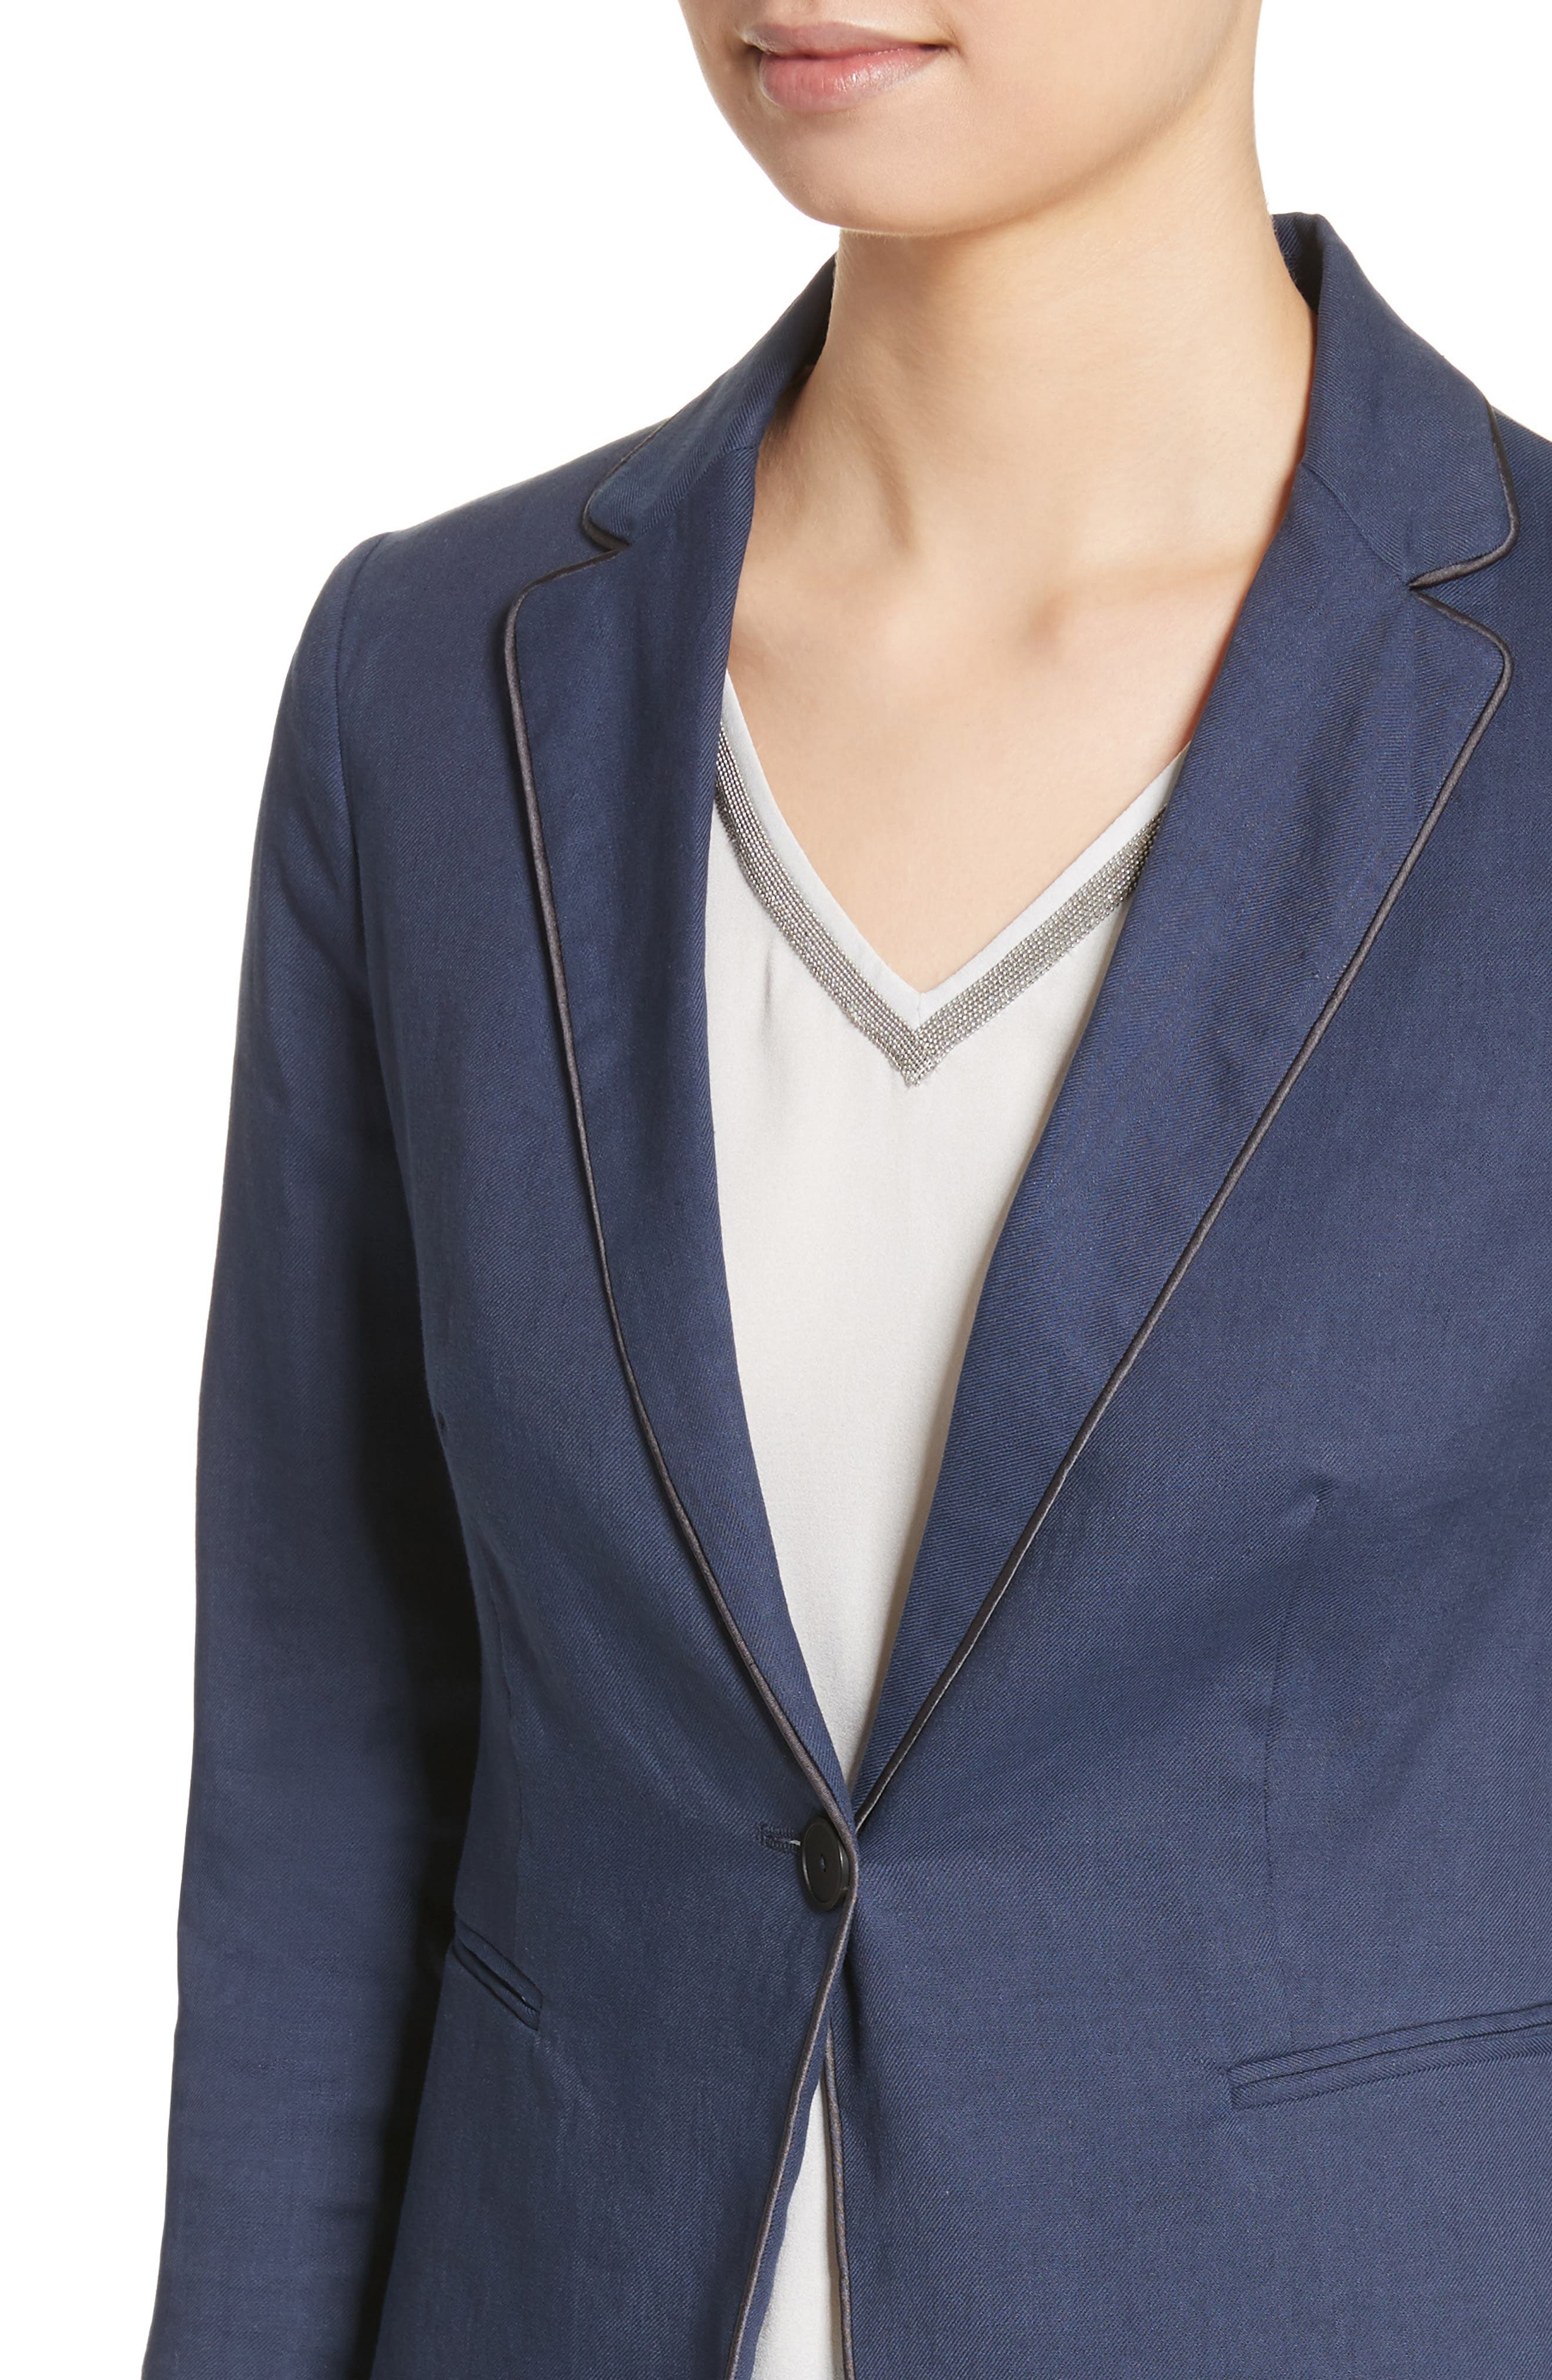 Piped Linen & Cotton Blend Blazer,                             Alternate thumbnail 4, color,                             Navy